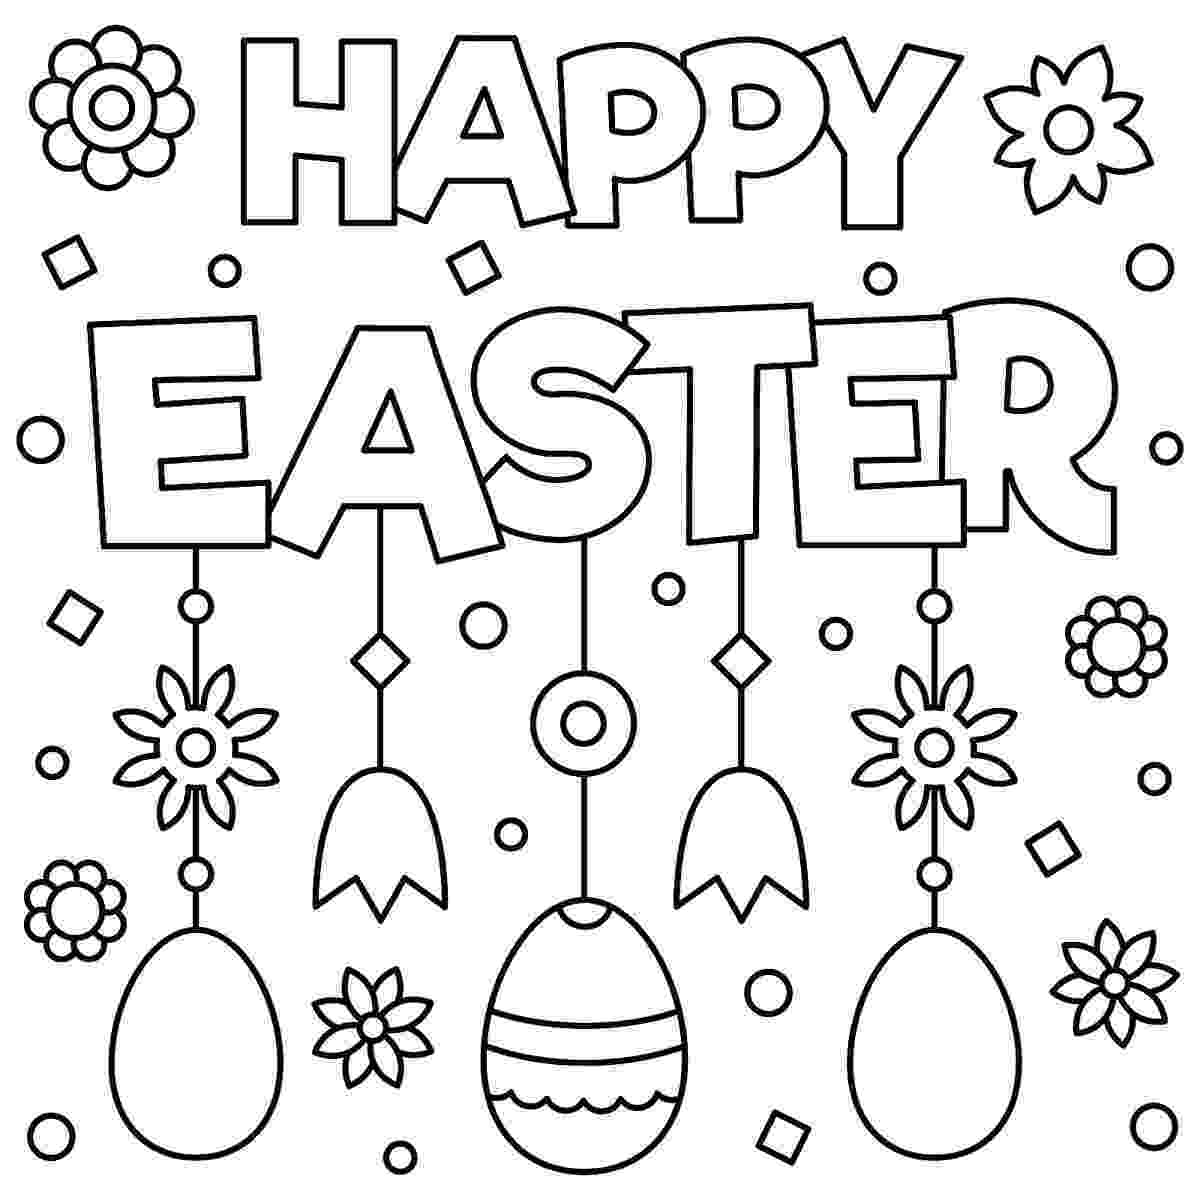 easter coloring pictures for preschoolers easter bunny color by sight word worksheet for kindergarten coloring preschoolers pictures easter for